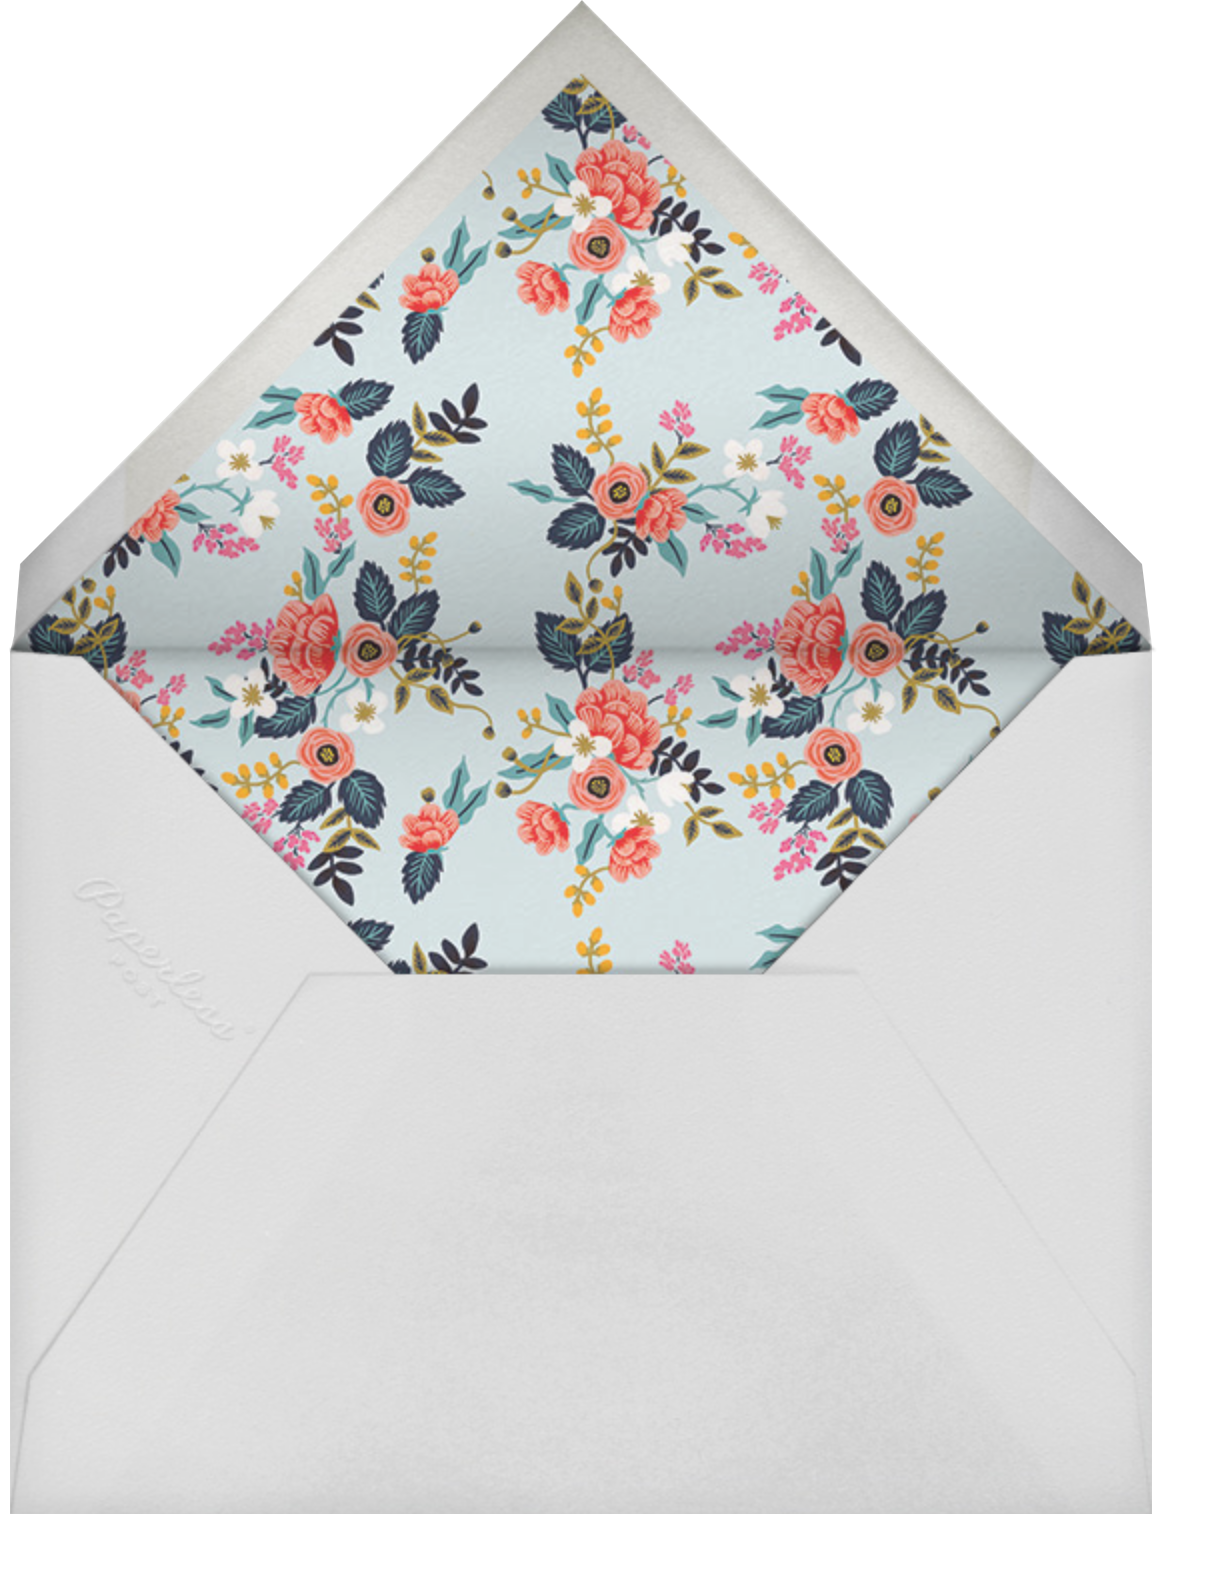 Birch Monarch (Frame) - White  - Rifle Paper Co. - Cocktail party - envelope back